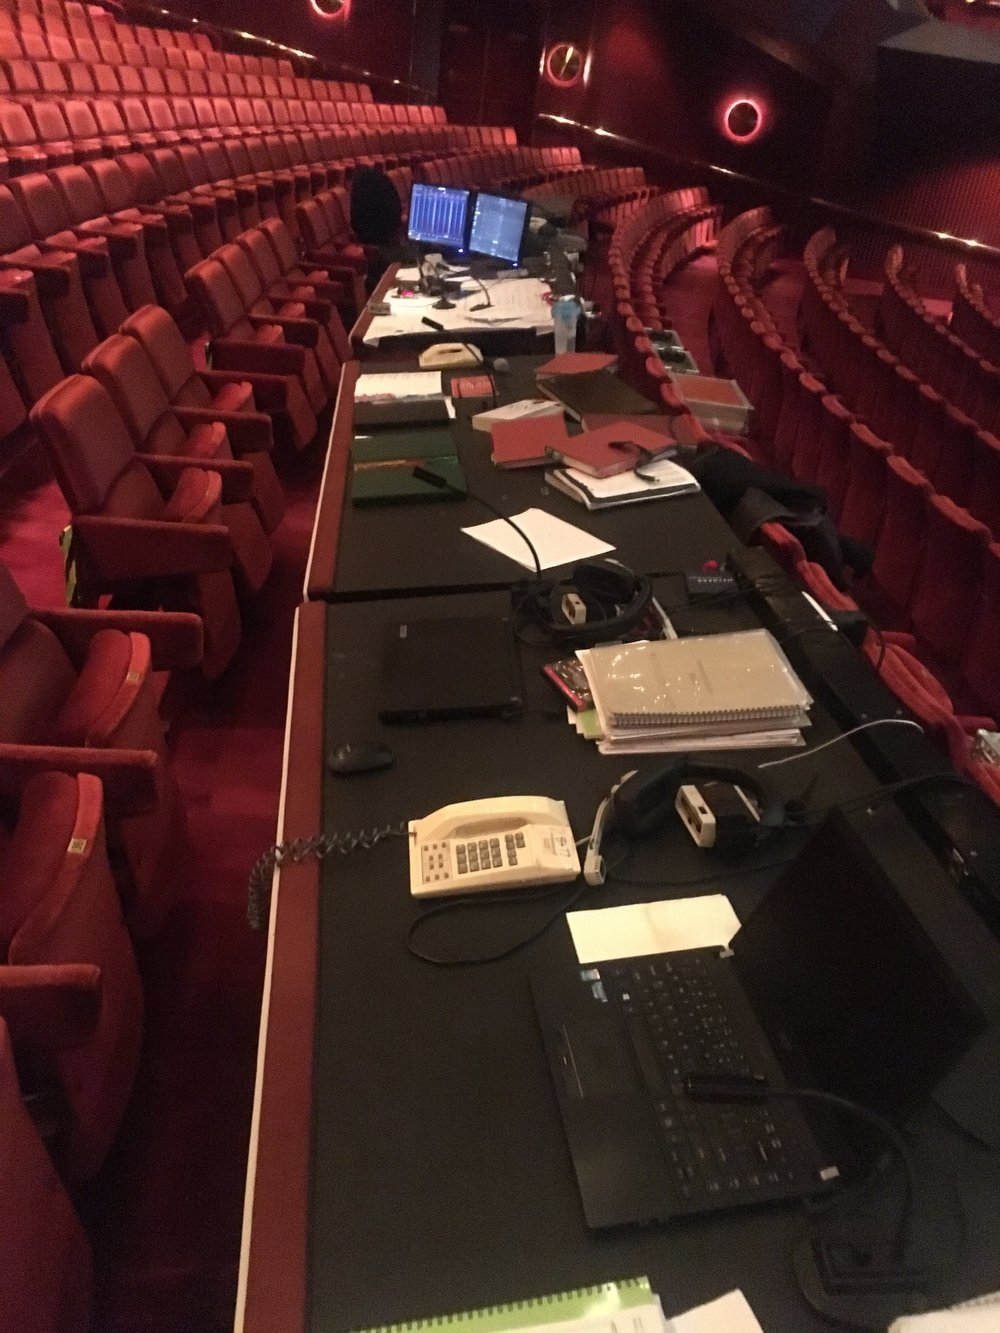 The production desks in the theatre